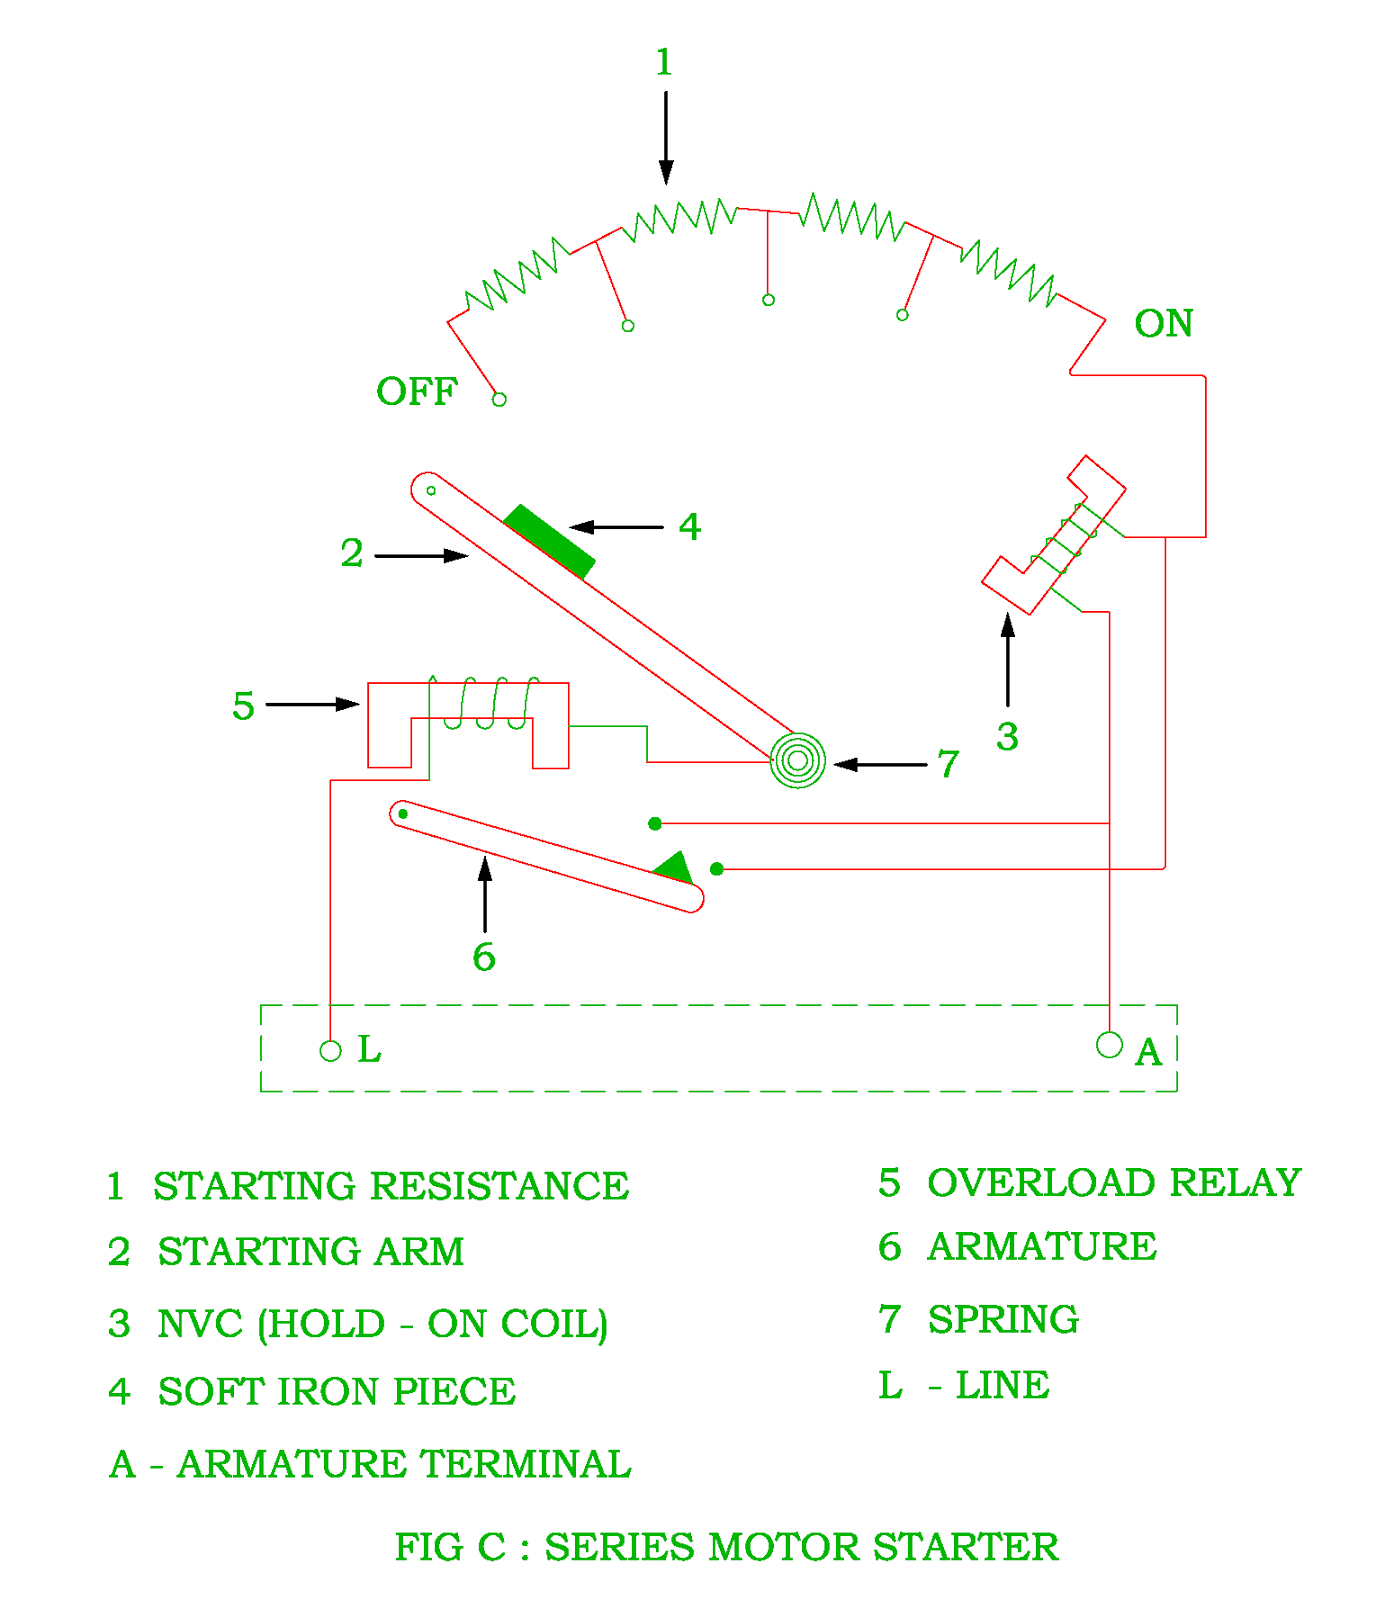 medium resolution of figure b shows a four point starter with internal wiring diagram of a long shunt compound motor